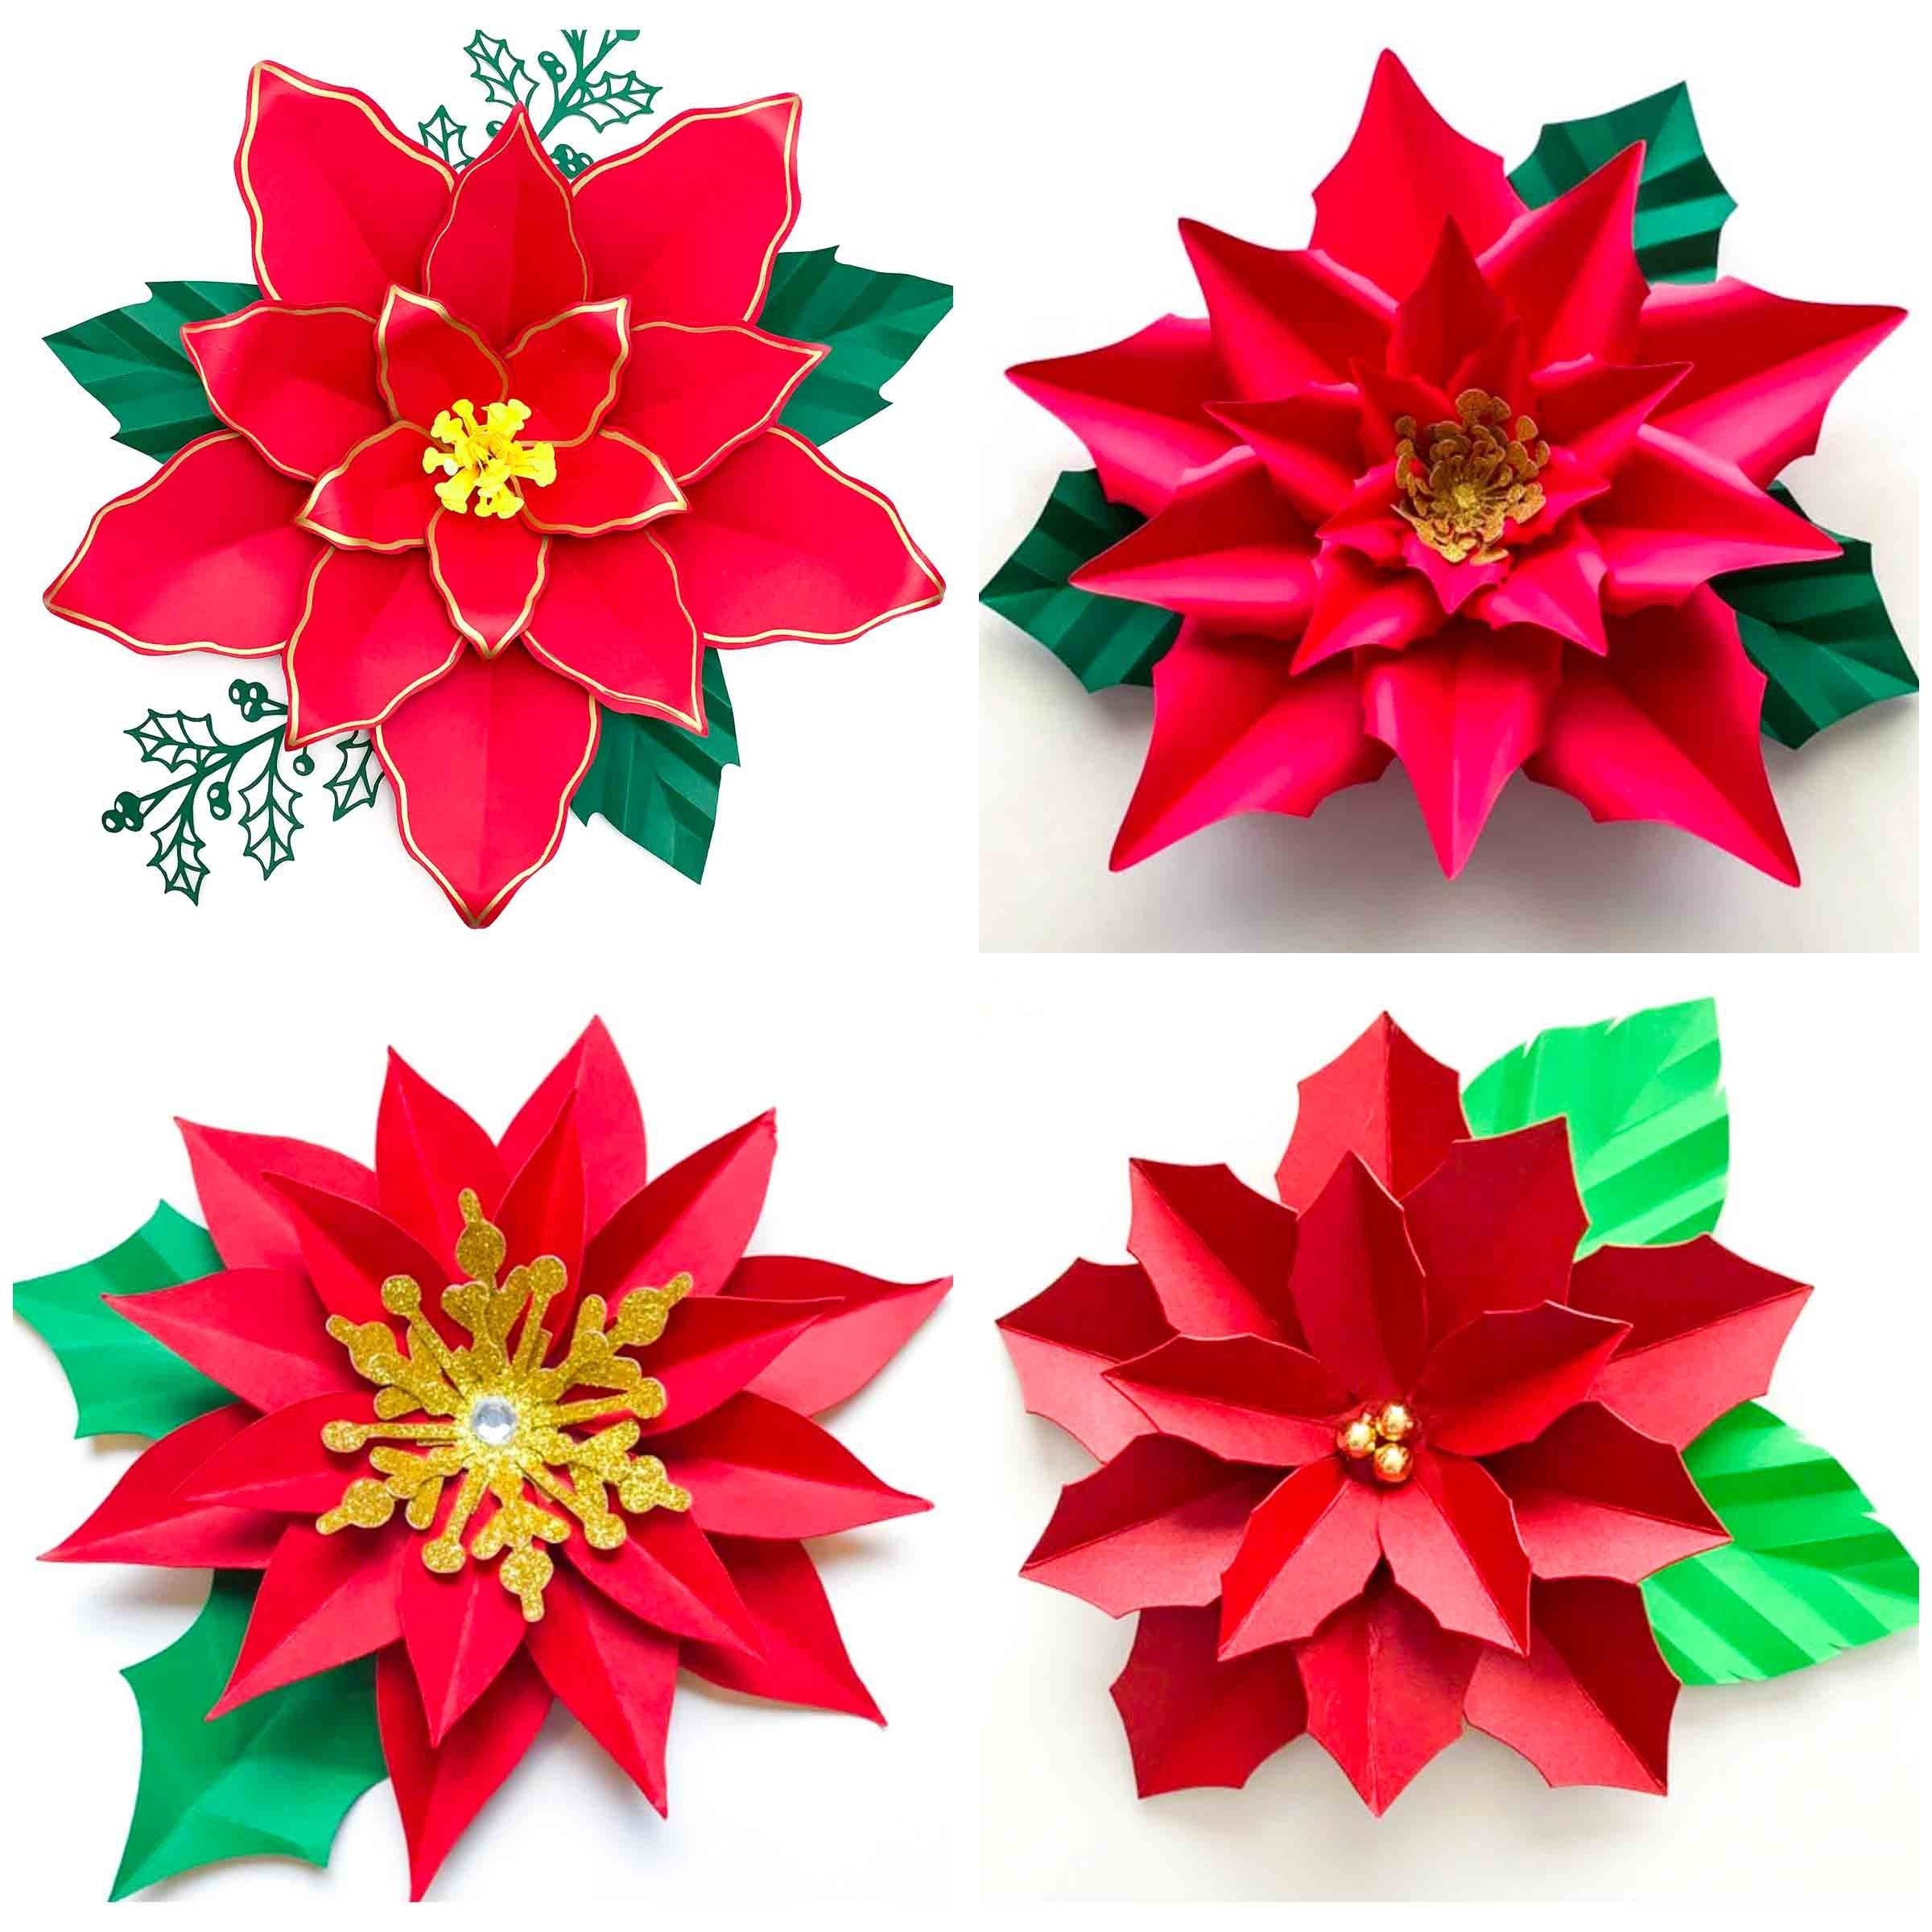 Svg Png Dxf 4 Designs Poinsettia For Cricut And Cameo